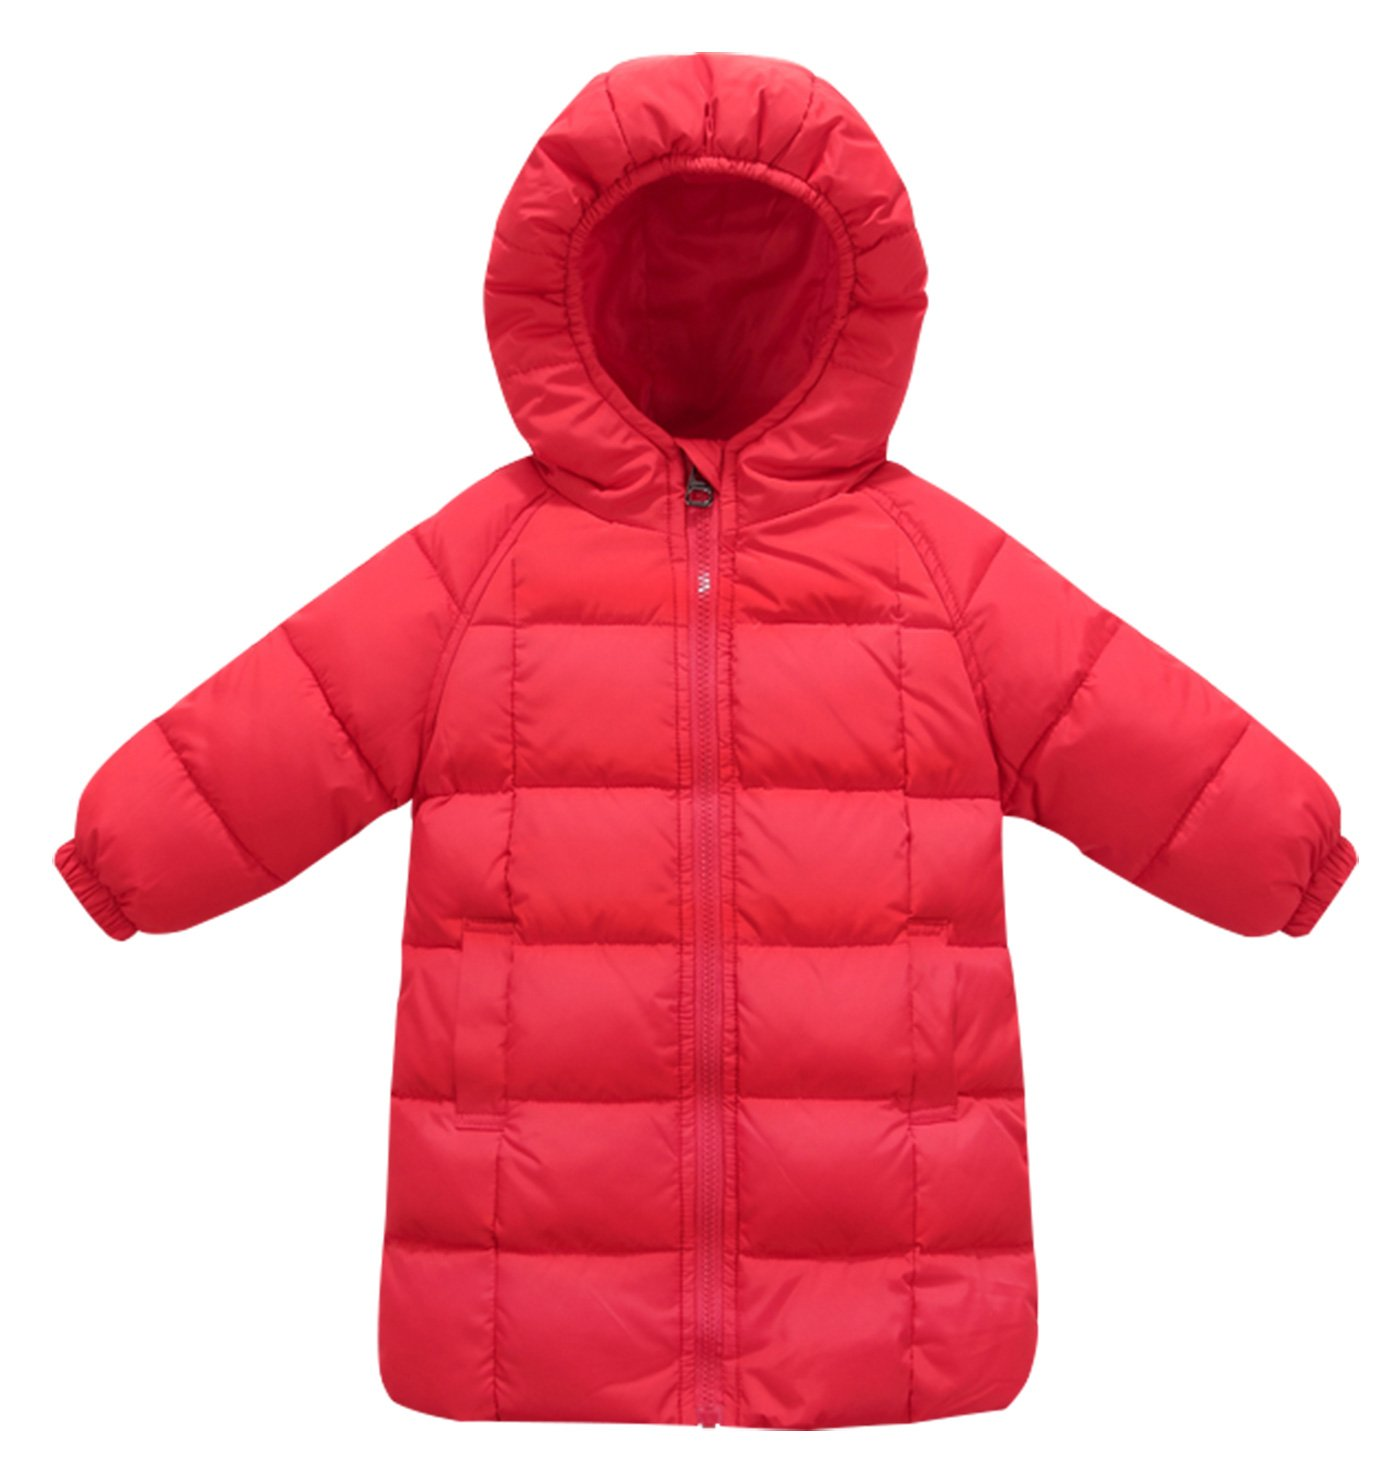 DiNuoTongXing Kids Winter Unisex Hooded Solid Long Down Coat Jacket Size 120cm - Red